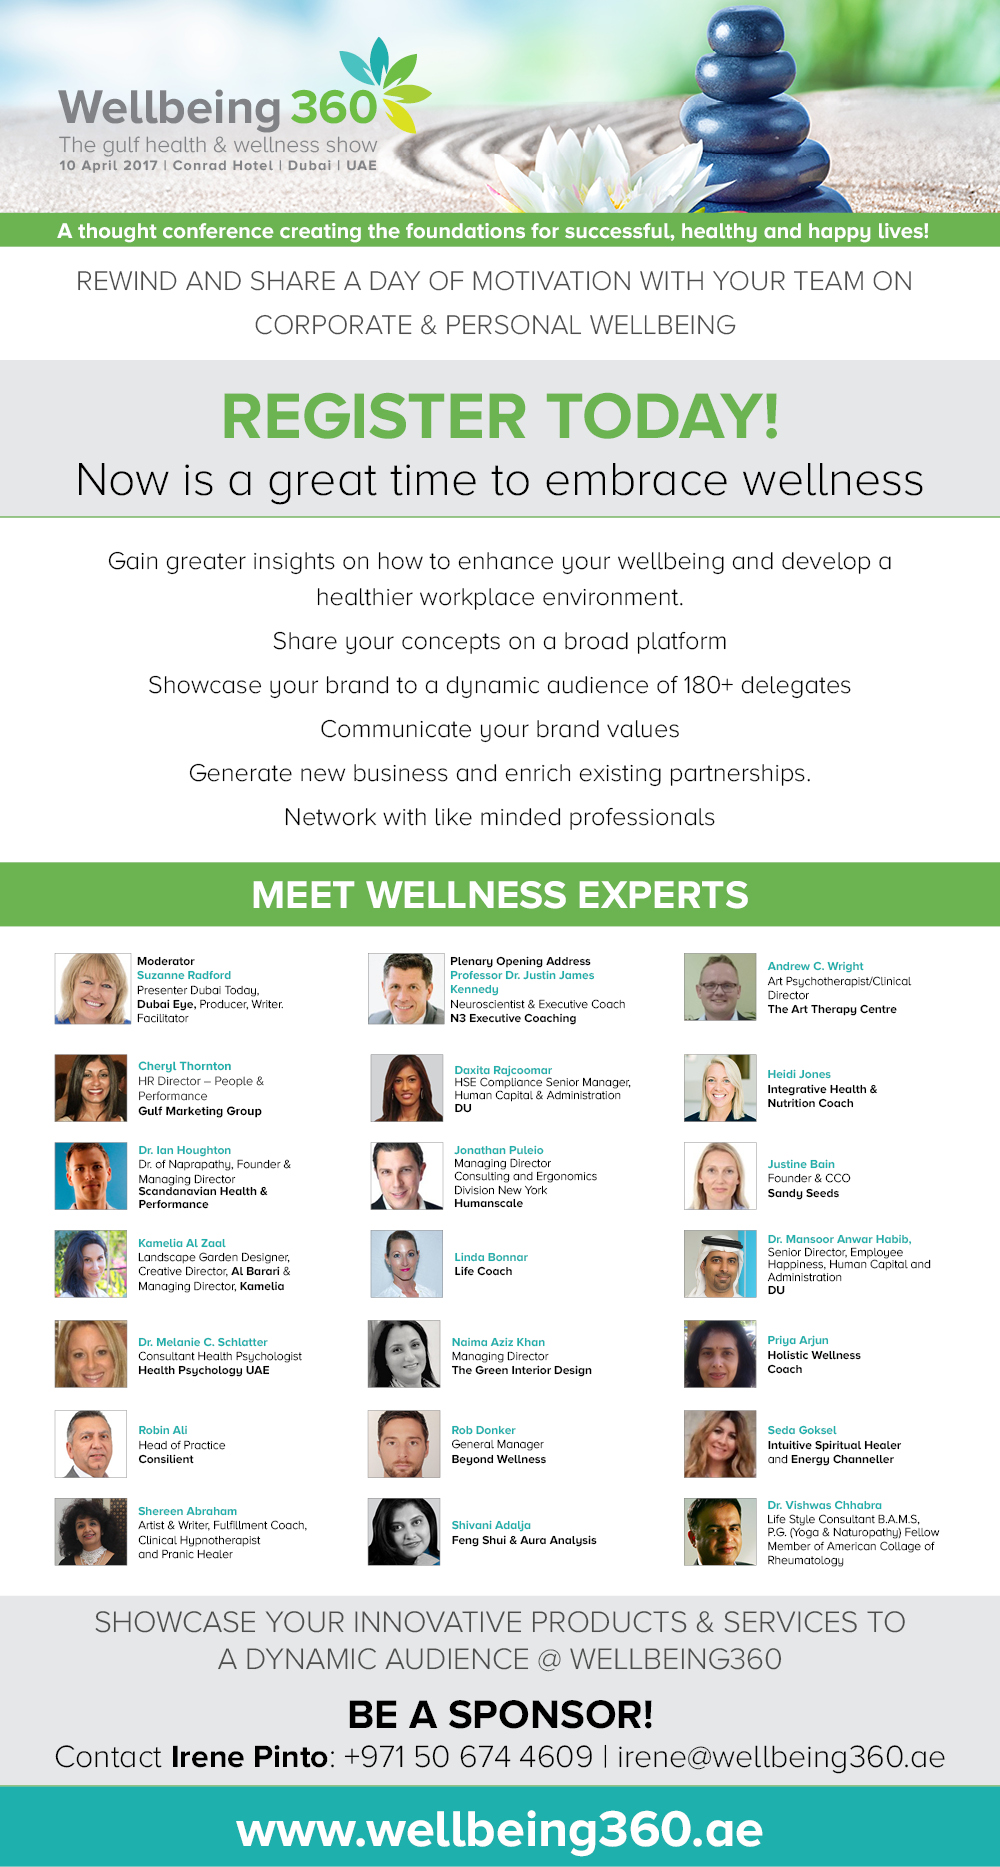 Wellbeing360